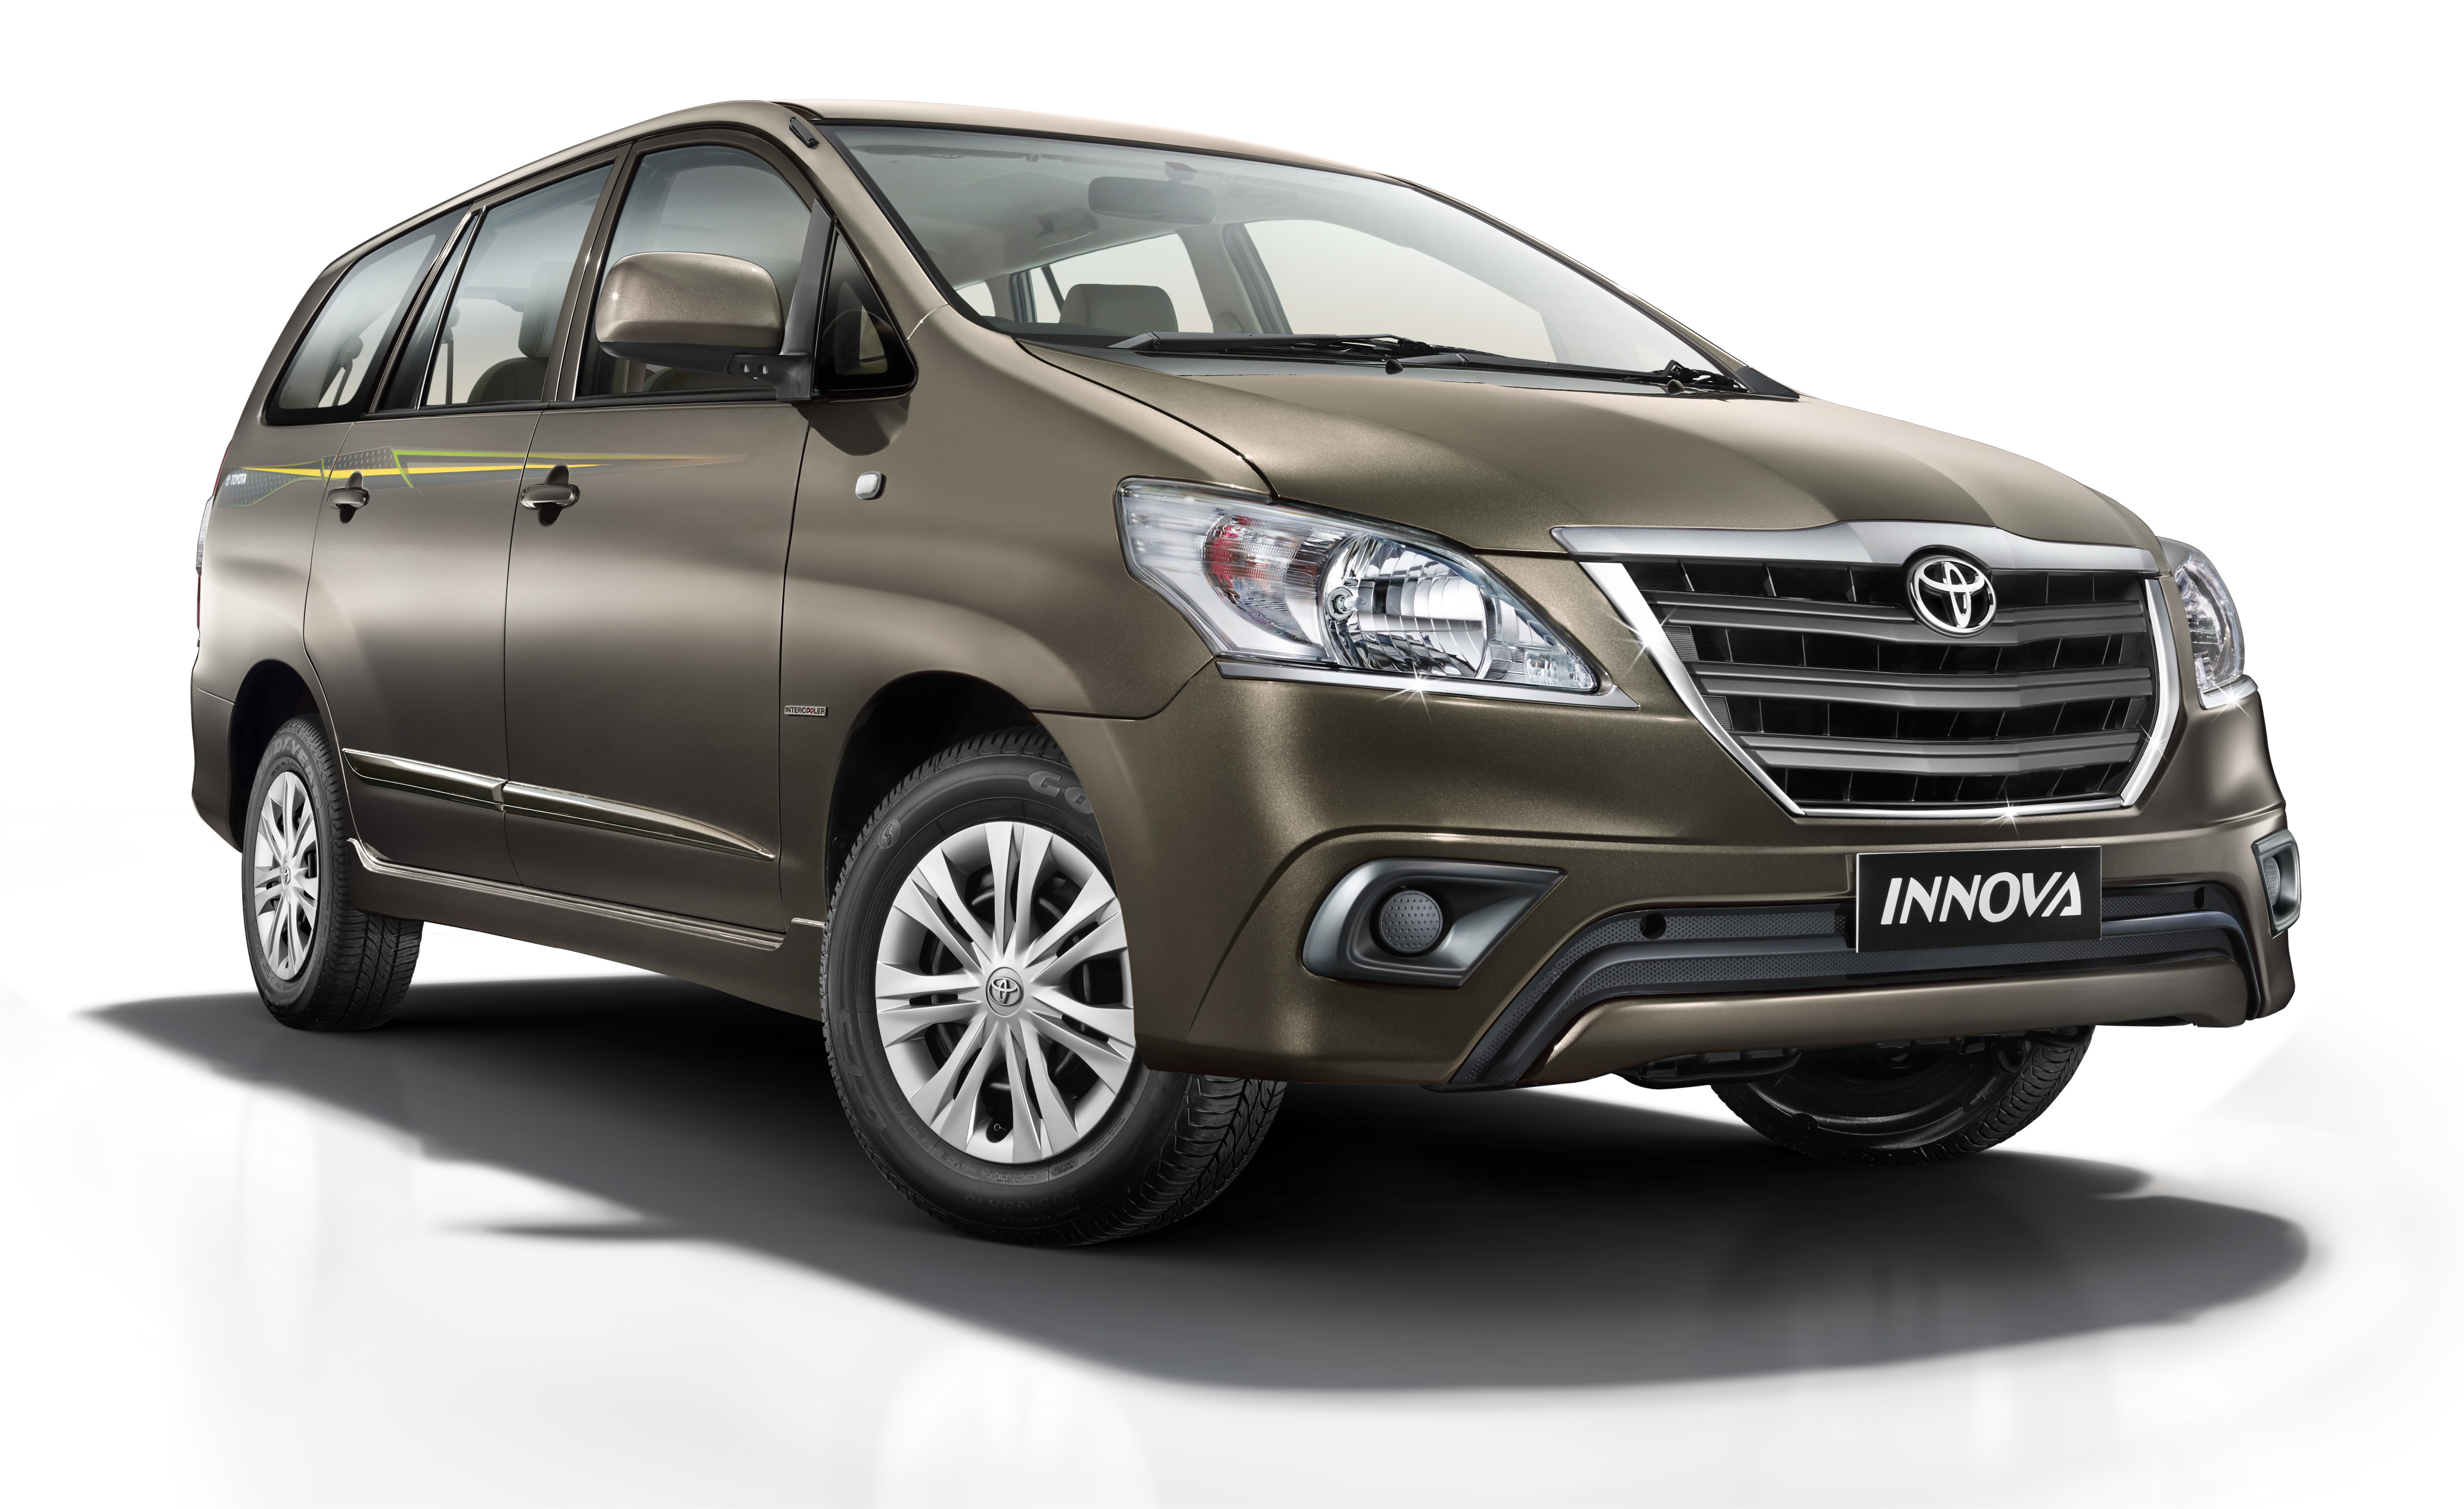 New 2014 Toyota Innova Limited Edition Launched at Rs 12.9 Lakhs; Gets ...